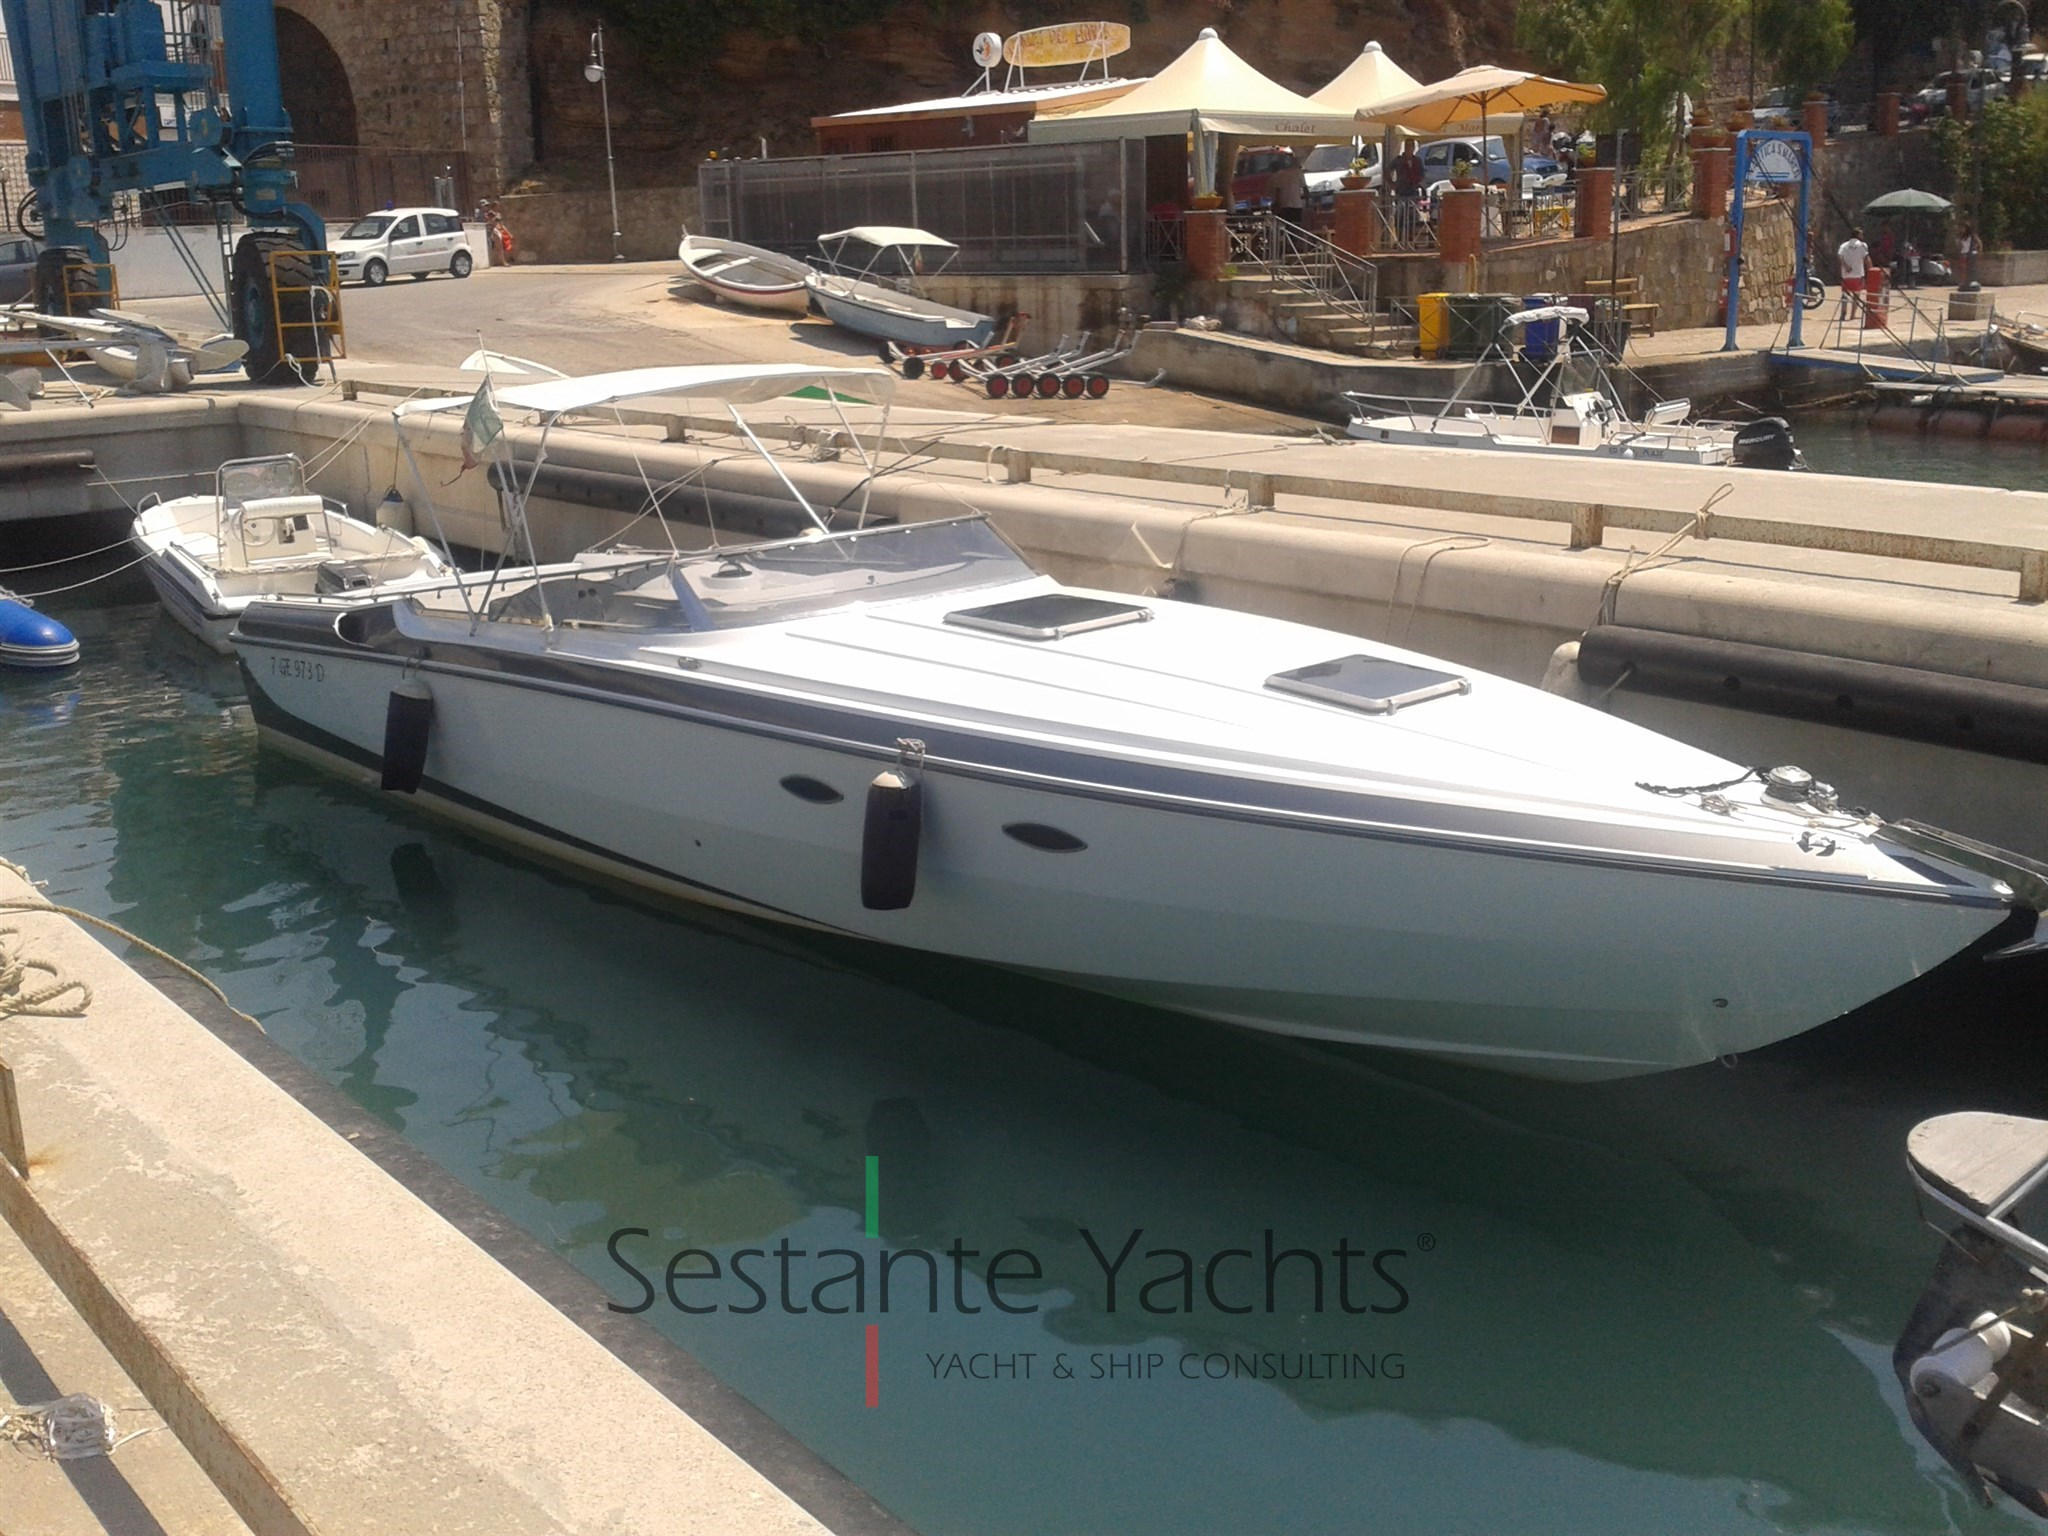 Wellcraft Marine 38 Scarab Thunder, preowned motorboat for